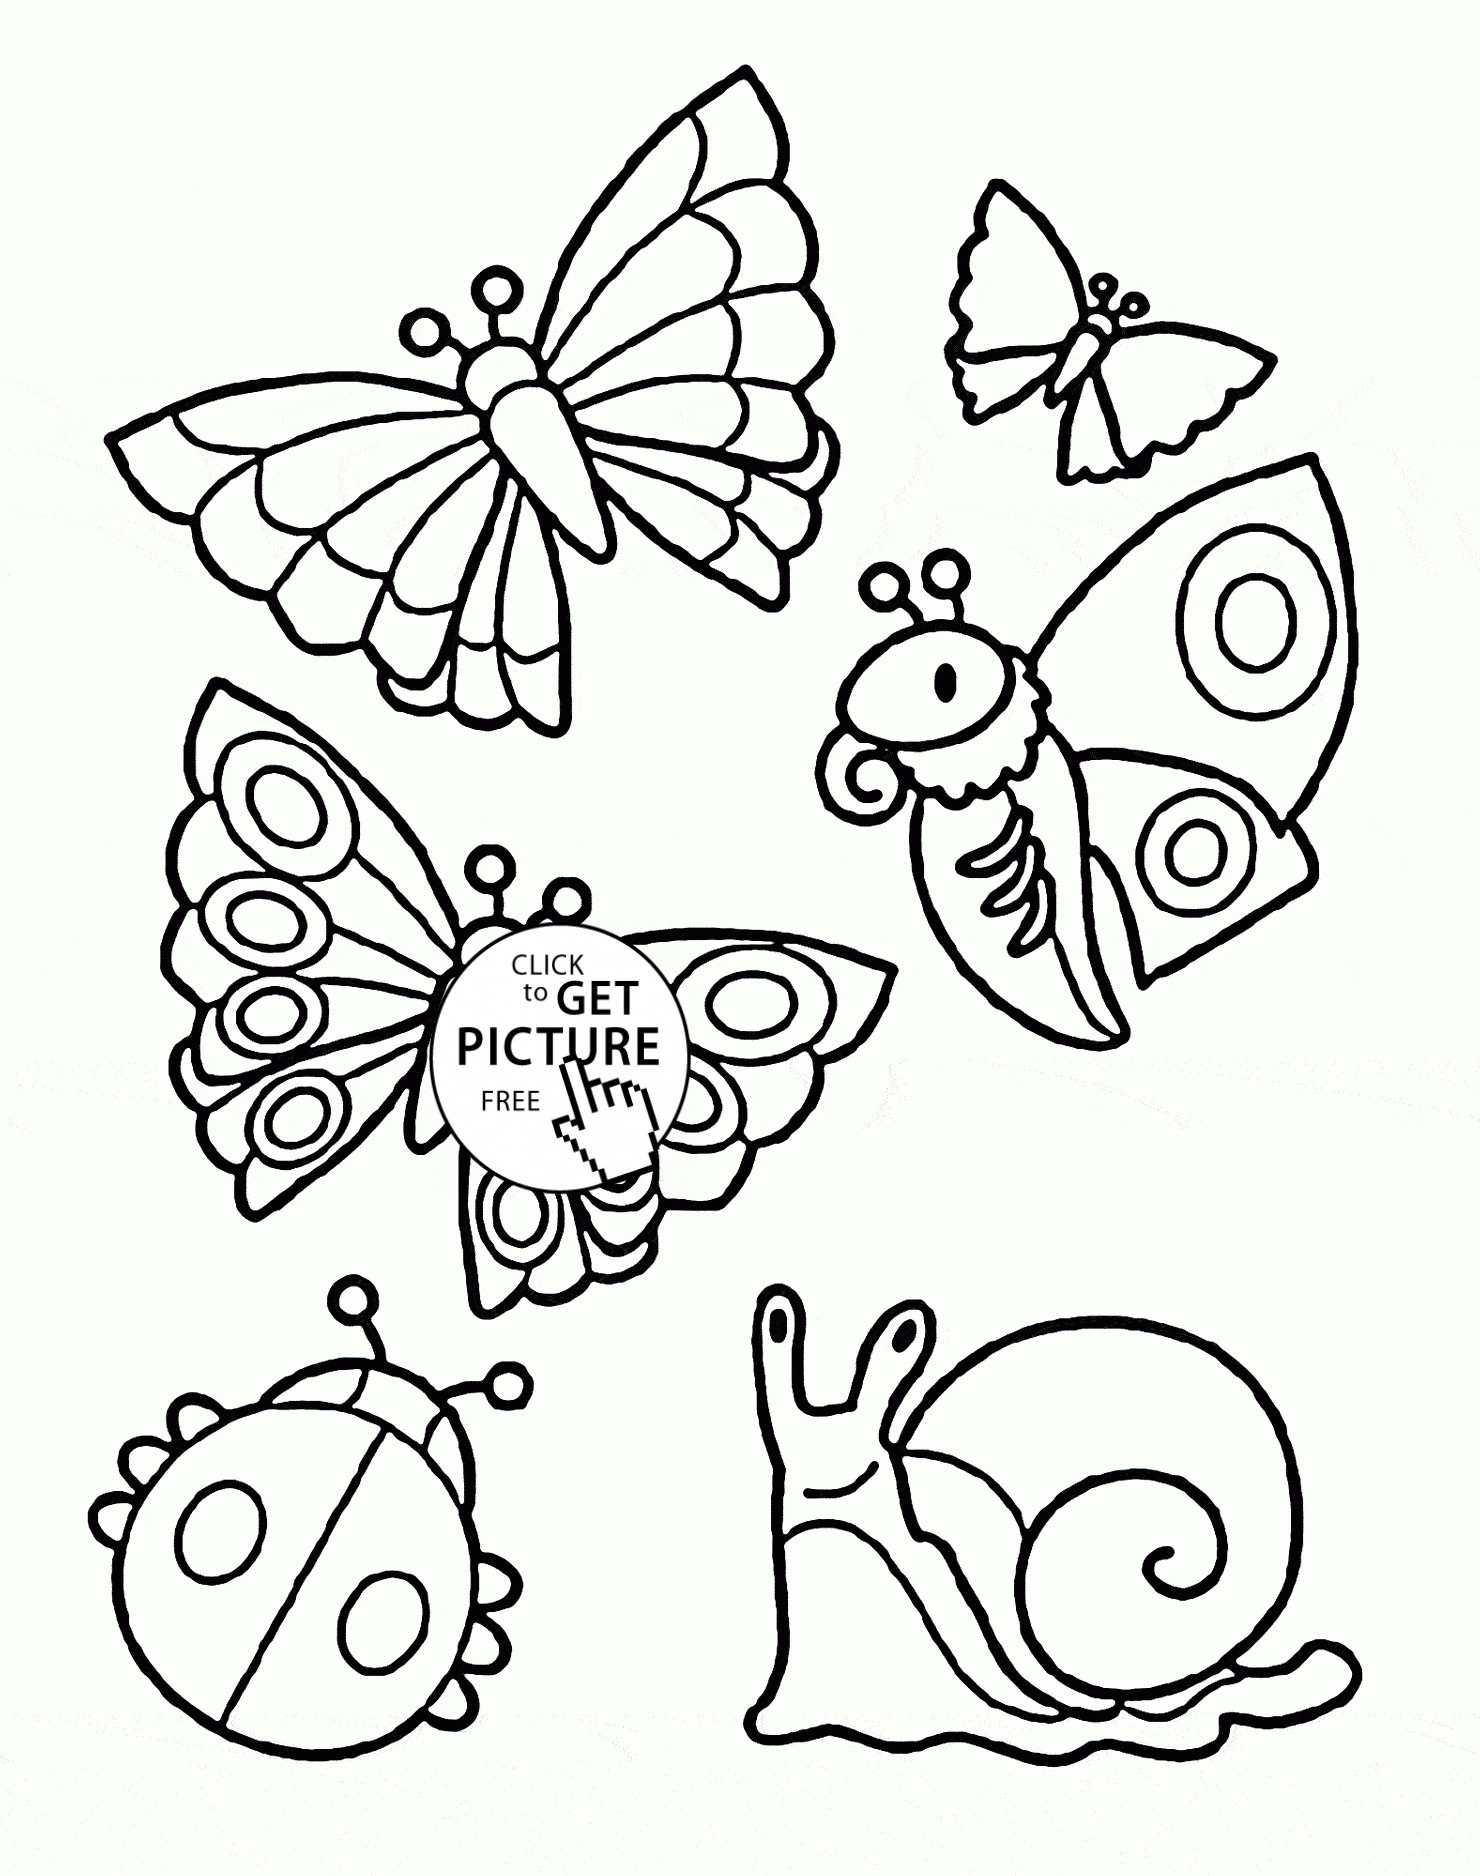 Coloring Pages : Valuable Free Printable Summer Coloring Pages - Free Printable Summer Coloring Pages